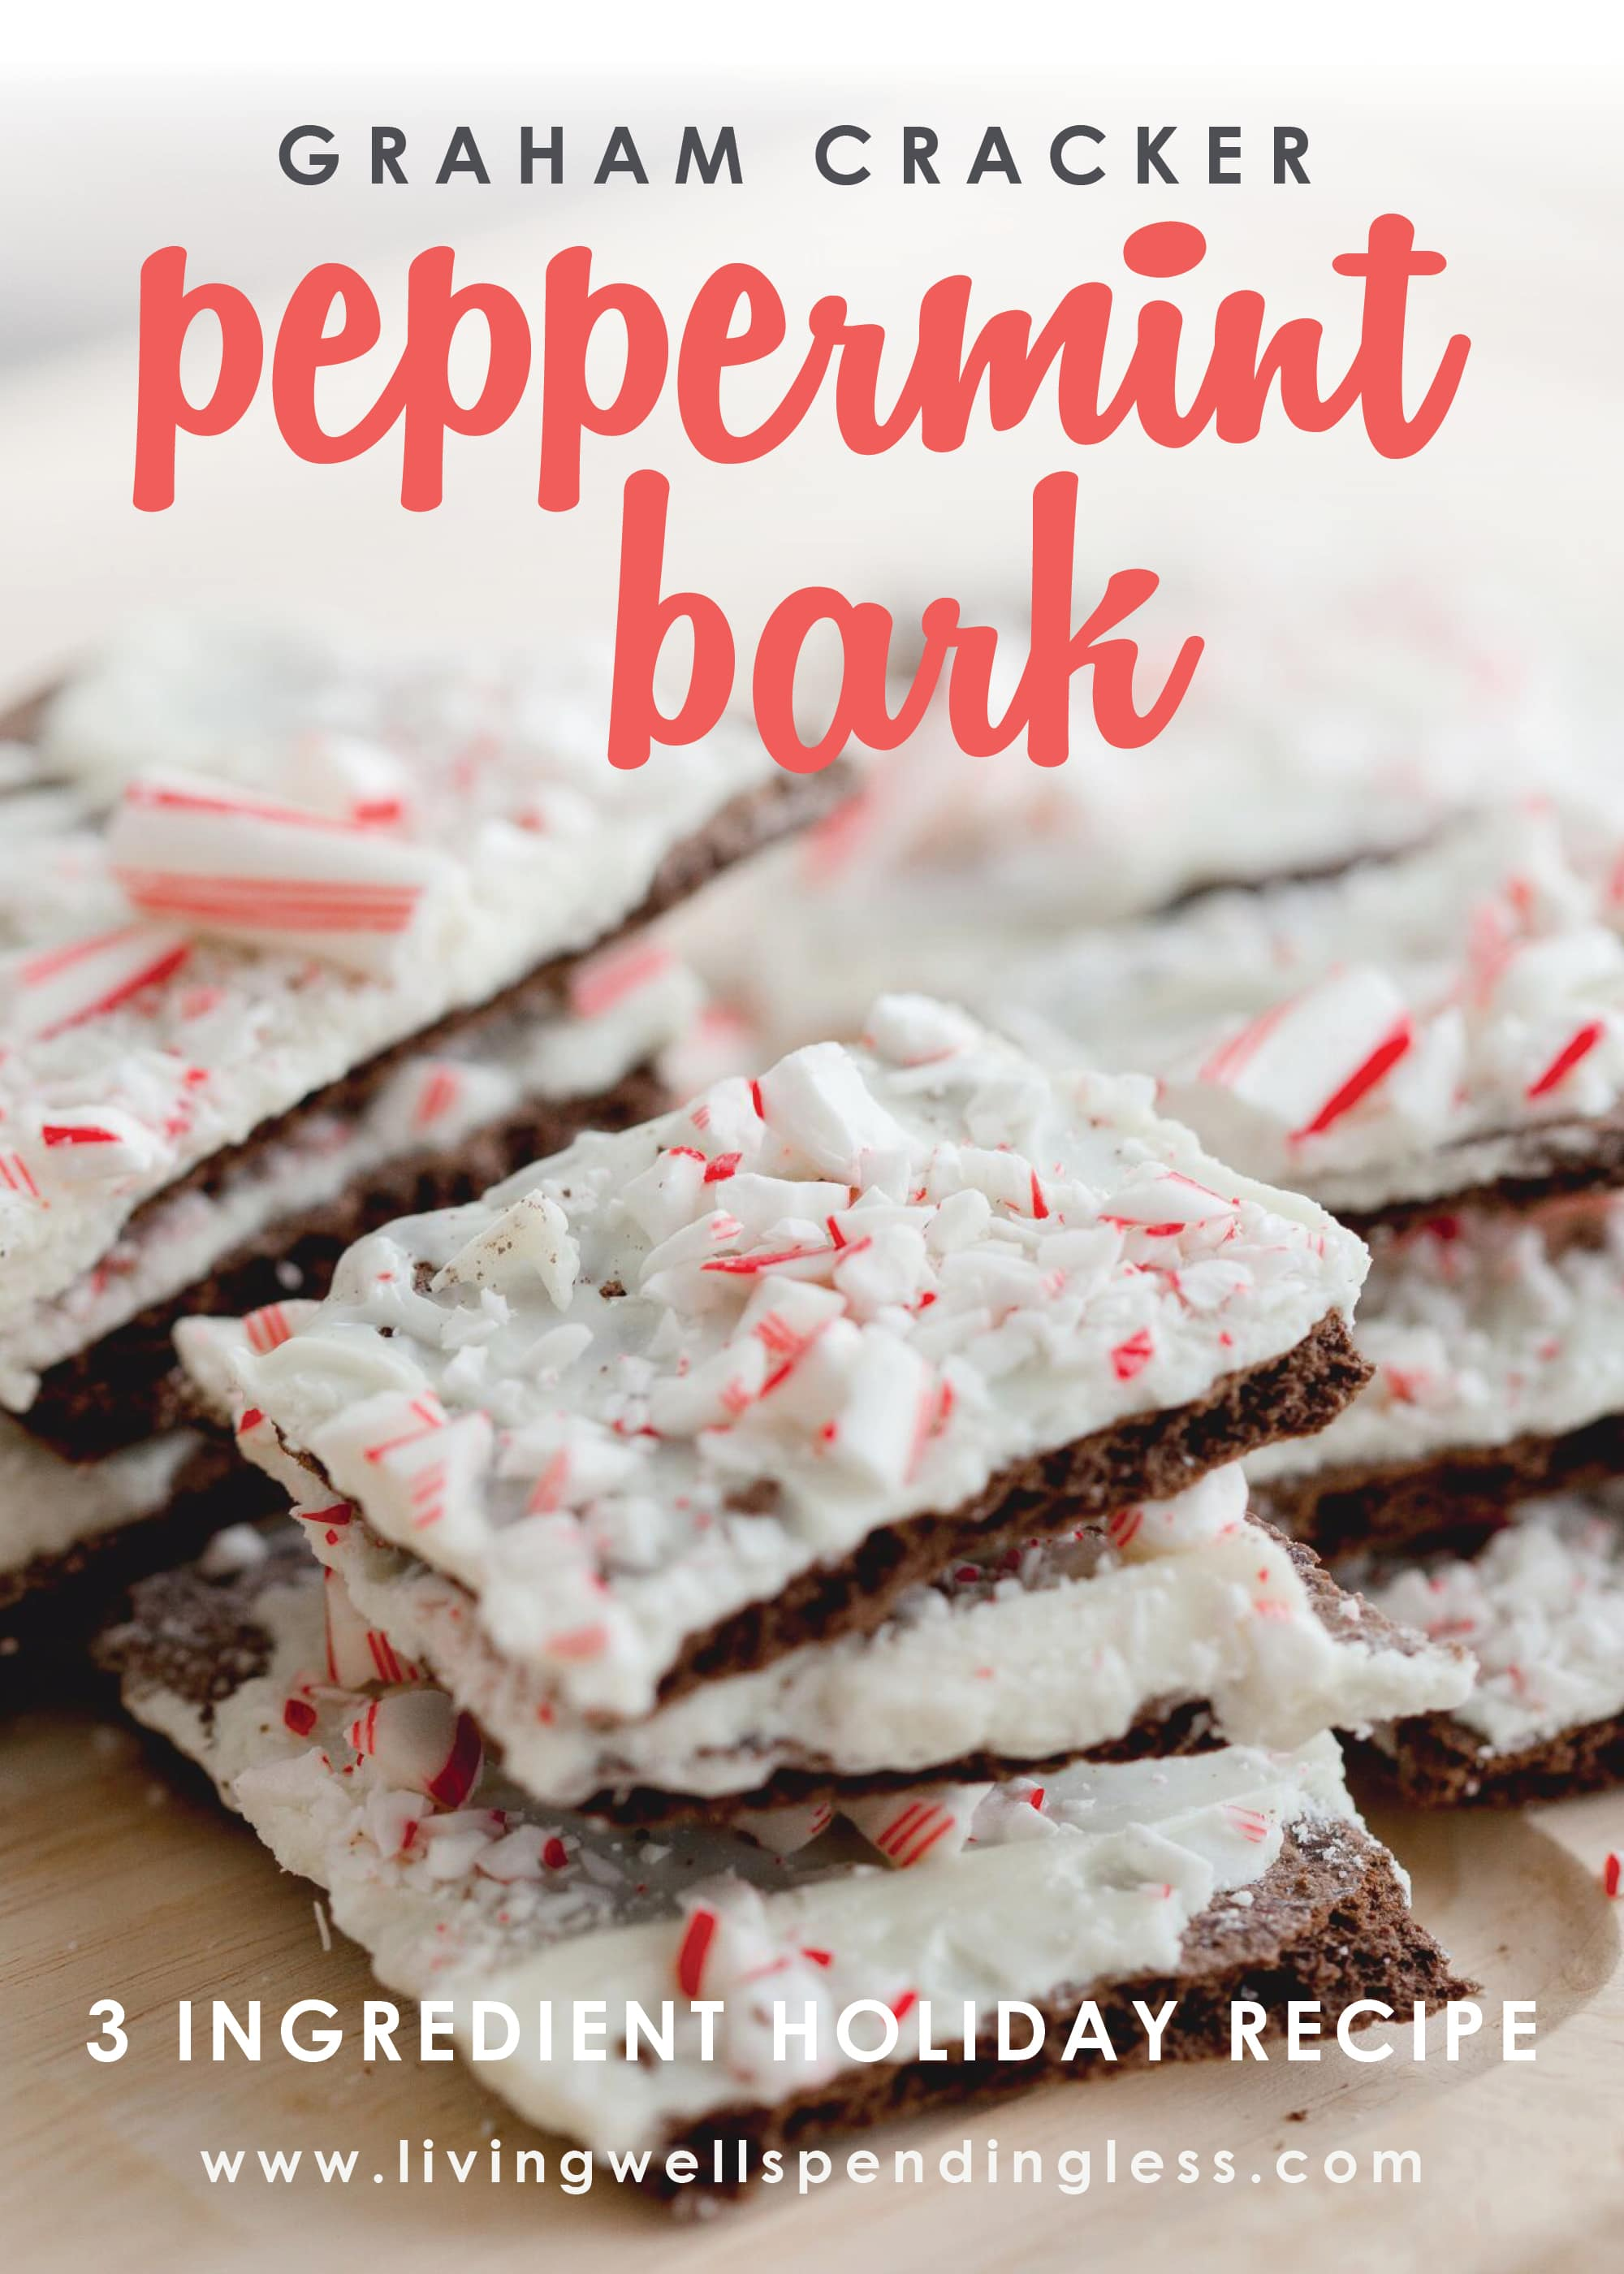 Looking for the perfect holiday recipe? This delicious semi-homemade peppermint bark comes together in as little as 20 minutes and uses just 3 ingredients!